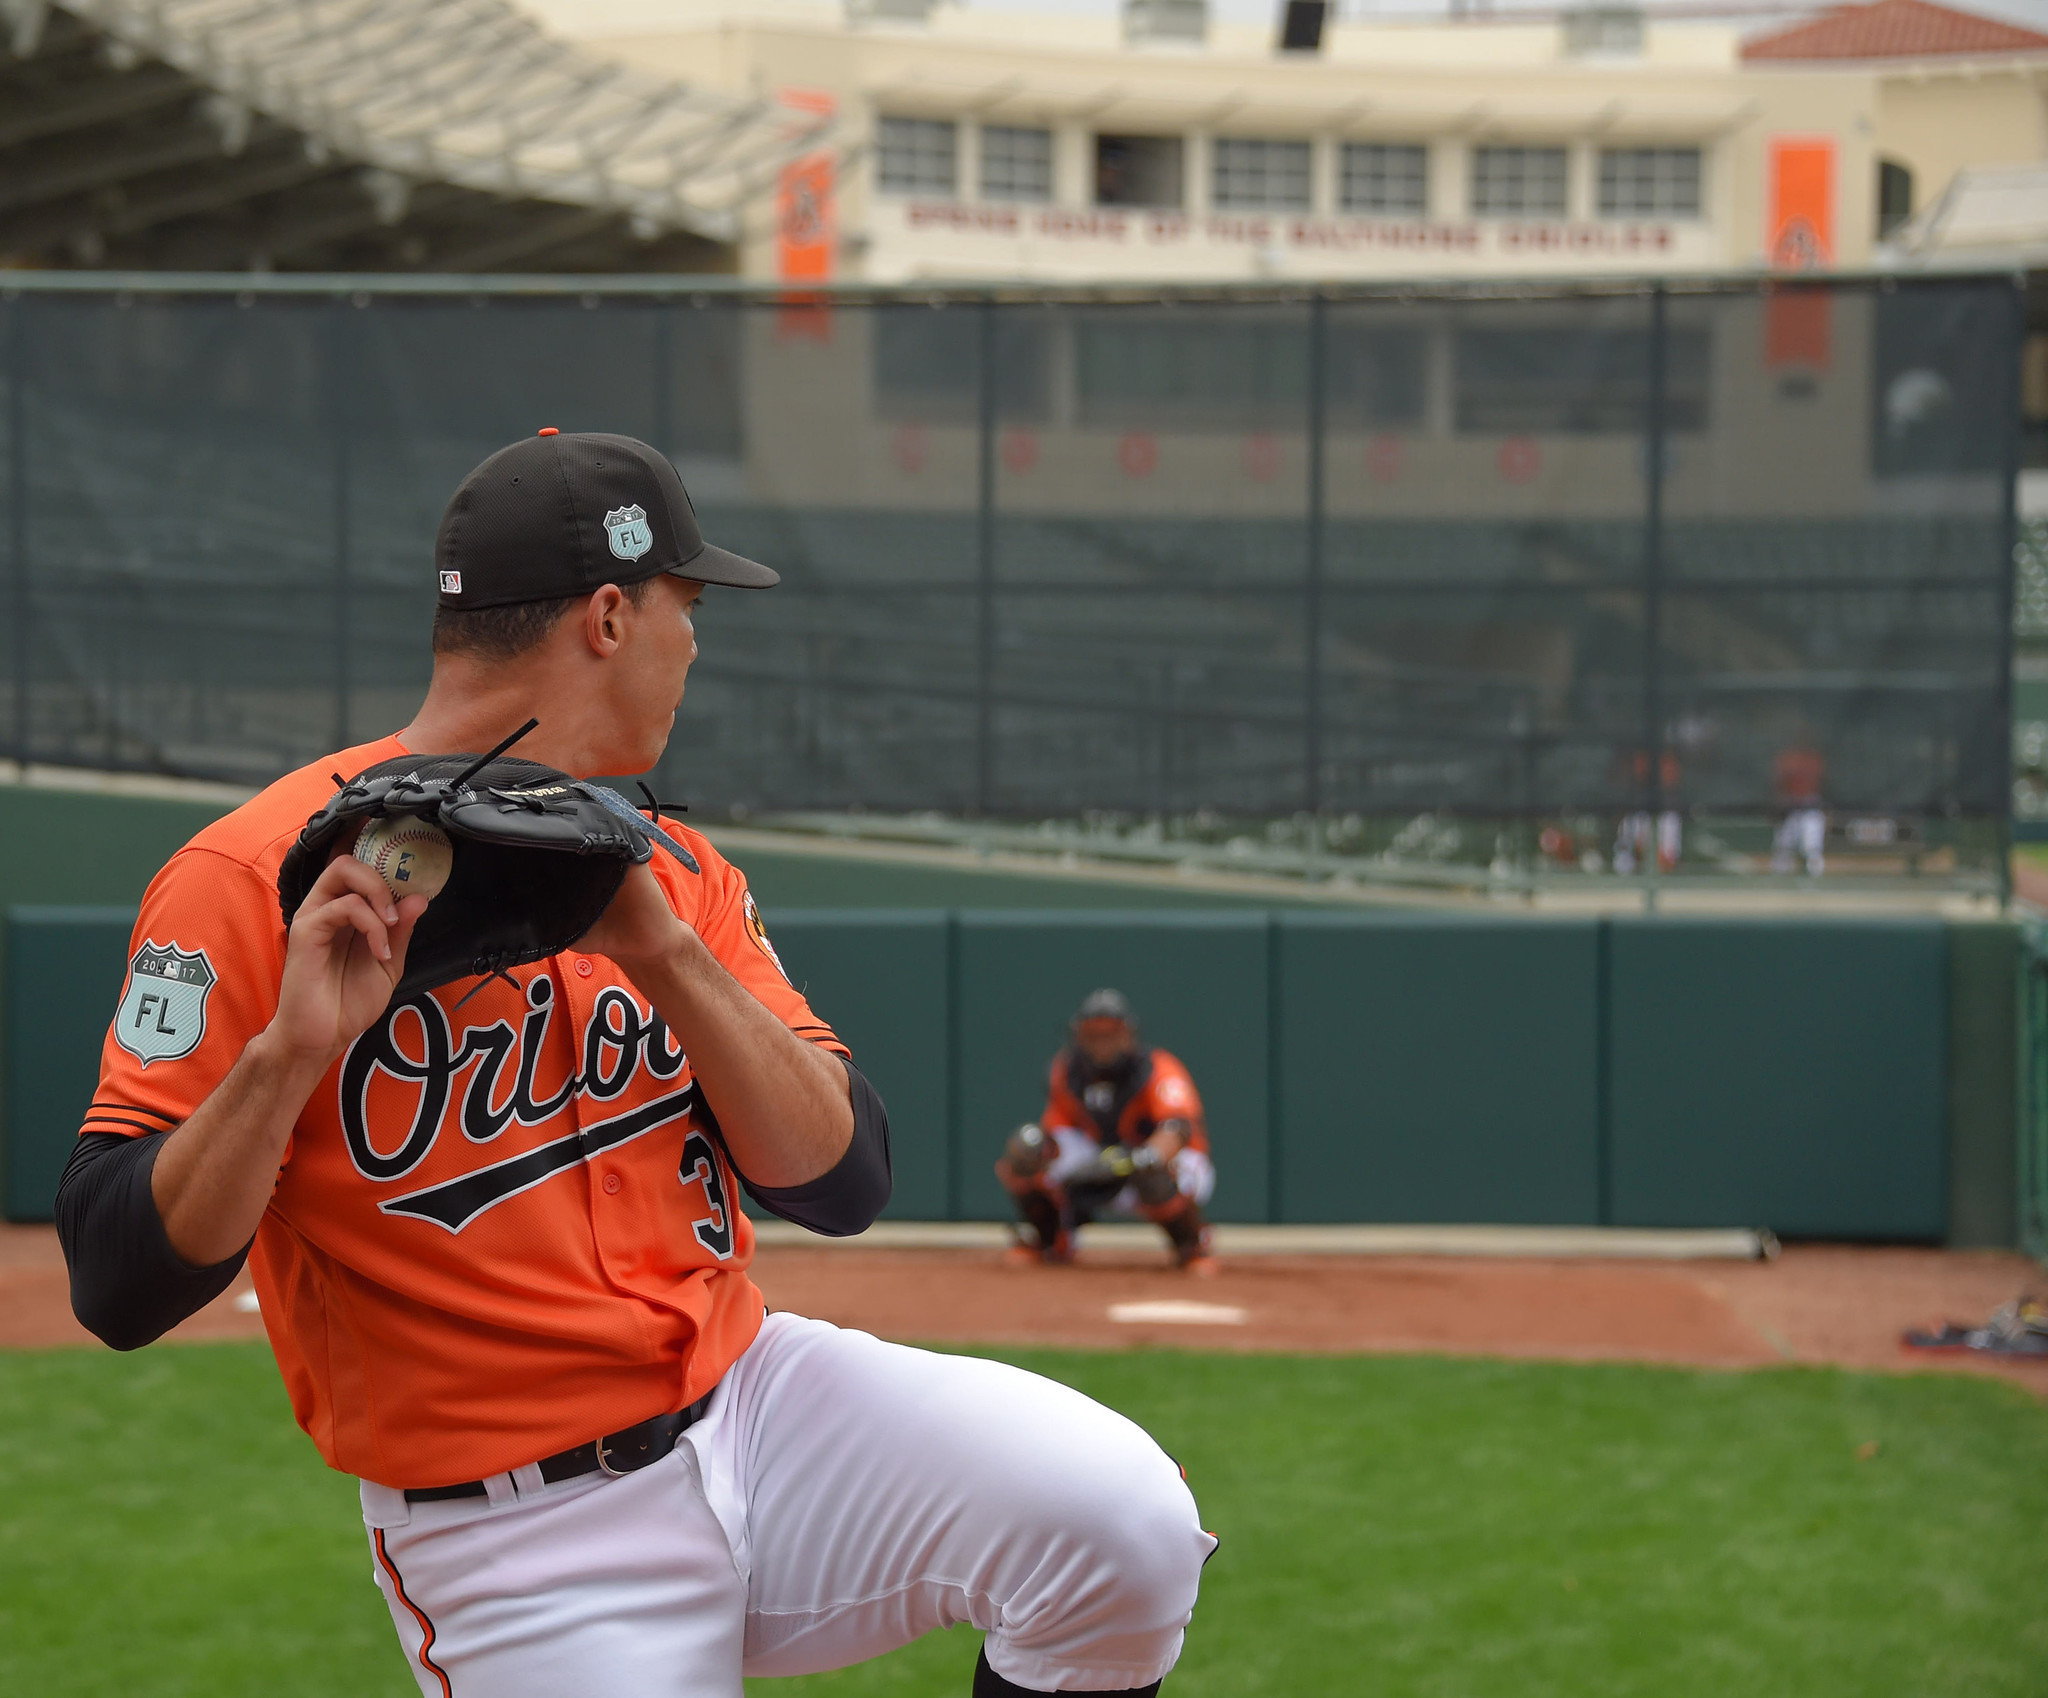 Bal-ubaldo-jimenez-allows-one-run-in-first-start-of-spring-as-orioles-lose-4-1-to-yankees-20170227